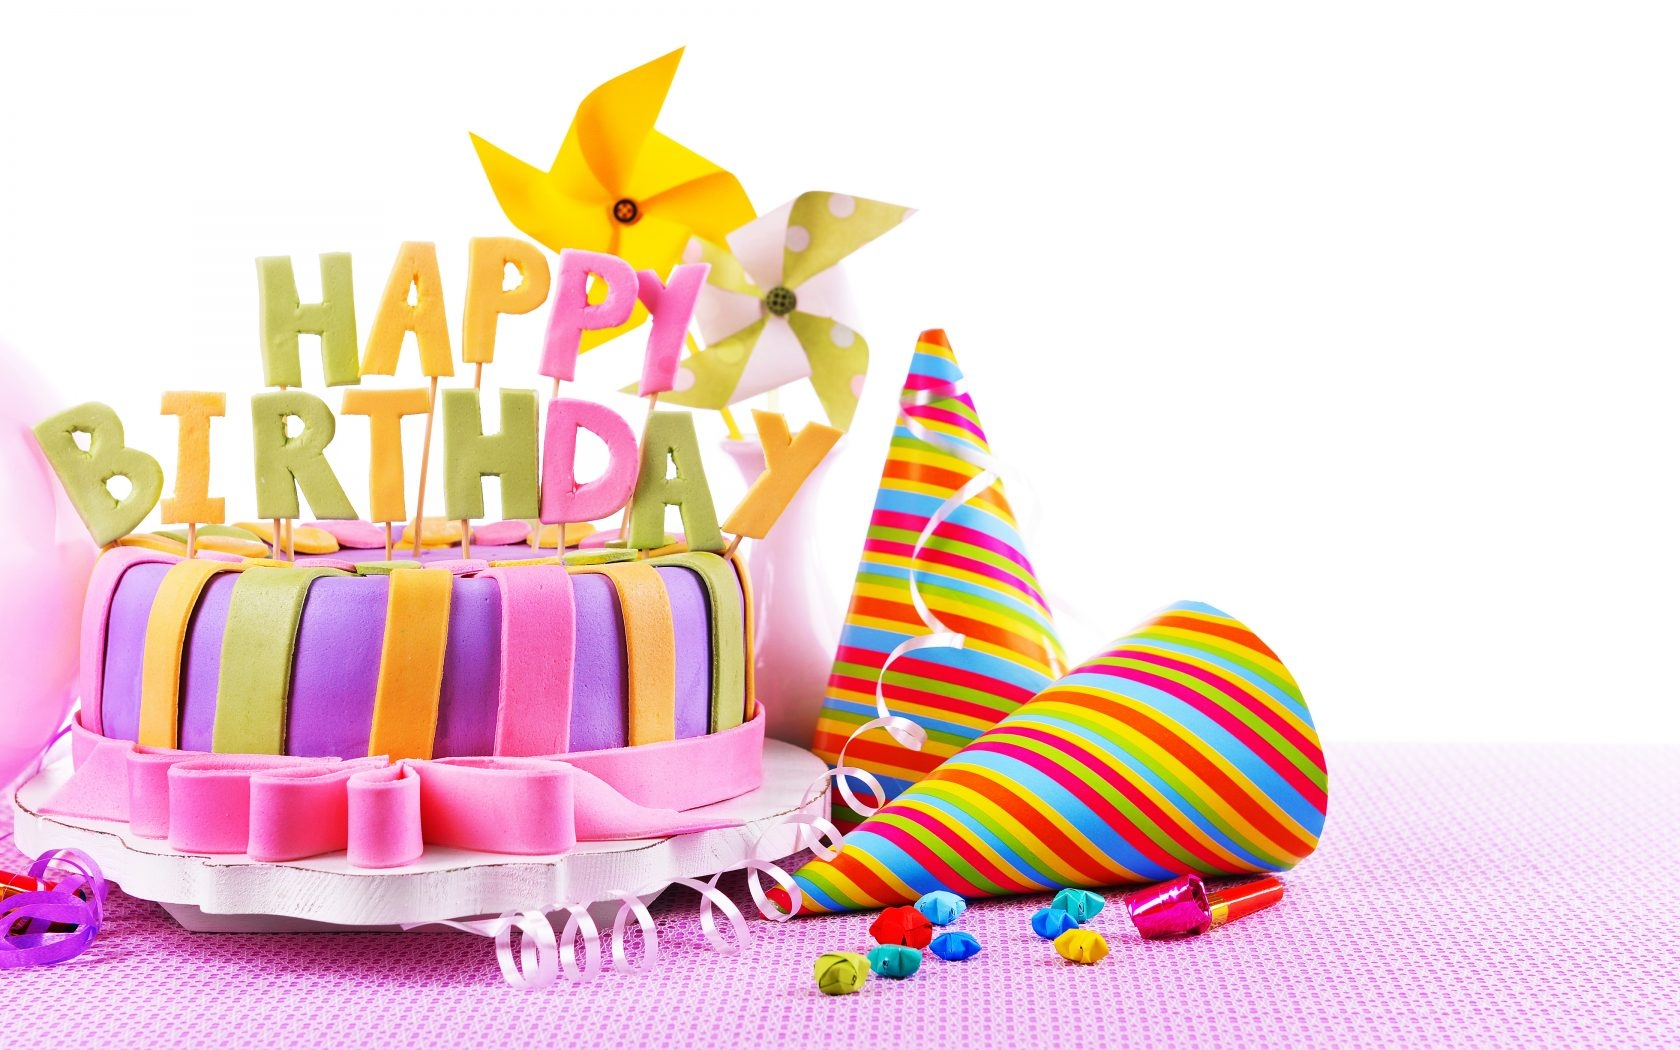 new wallpaper happy birthday ; happy-birthday-hd-wallpaper-1920x1080-happy-birthday-cake-with-balloons-4k-wallpaper